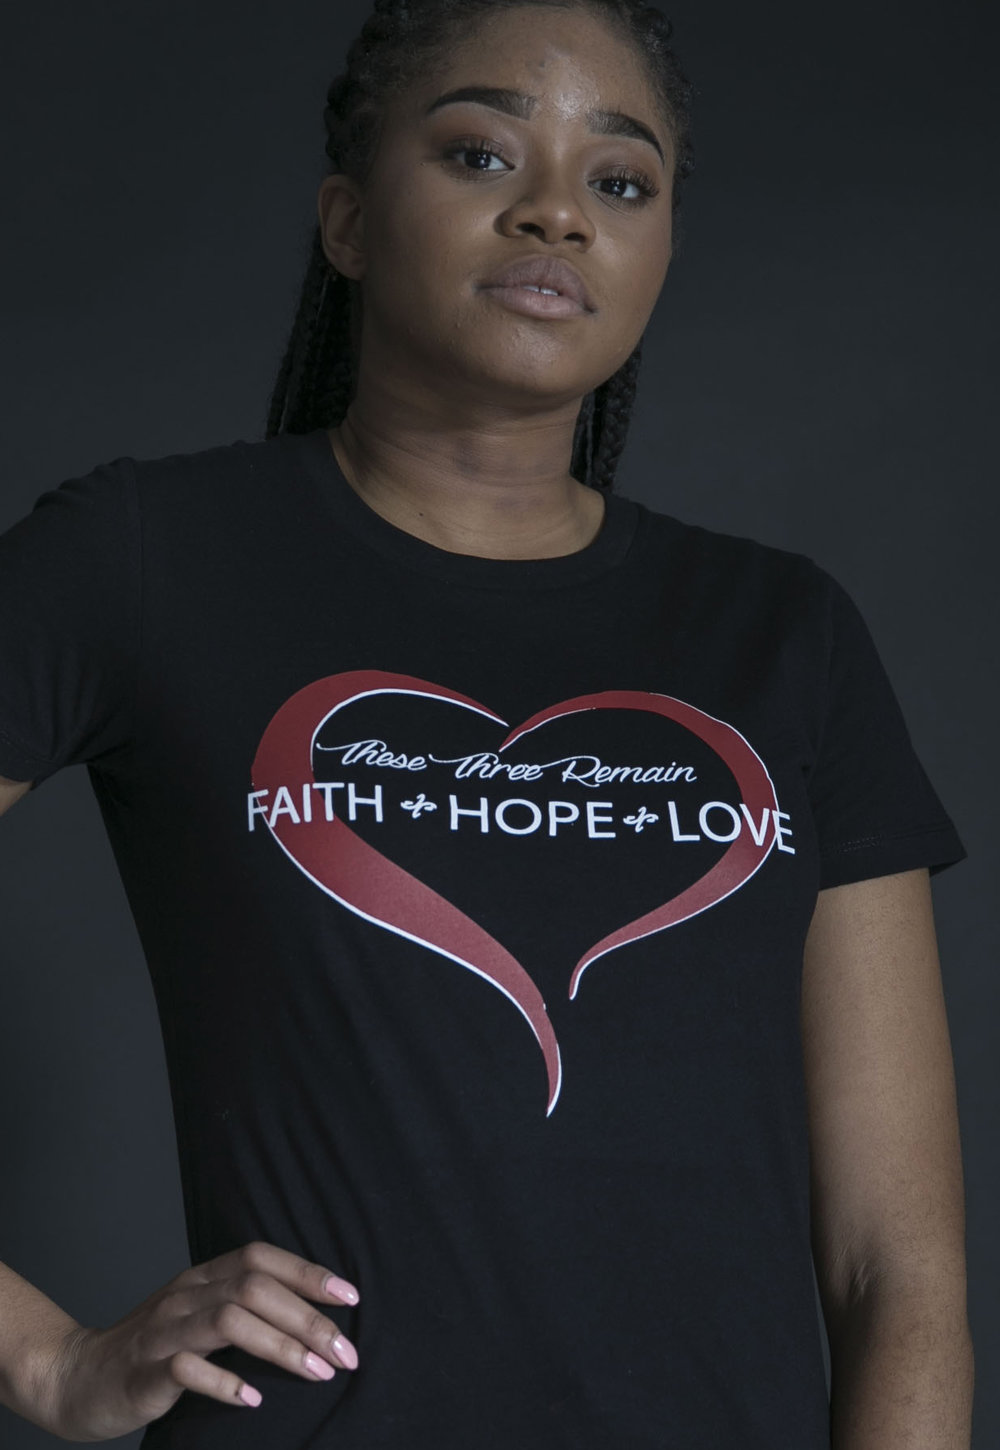 Faith Hope Love Tee - $24